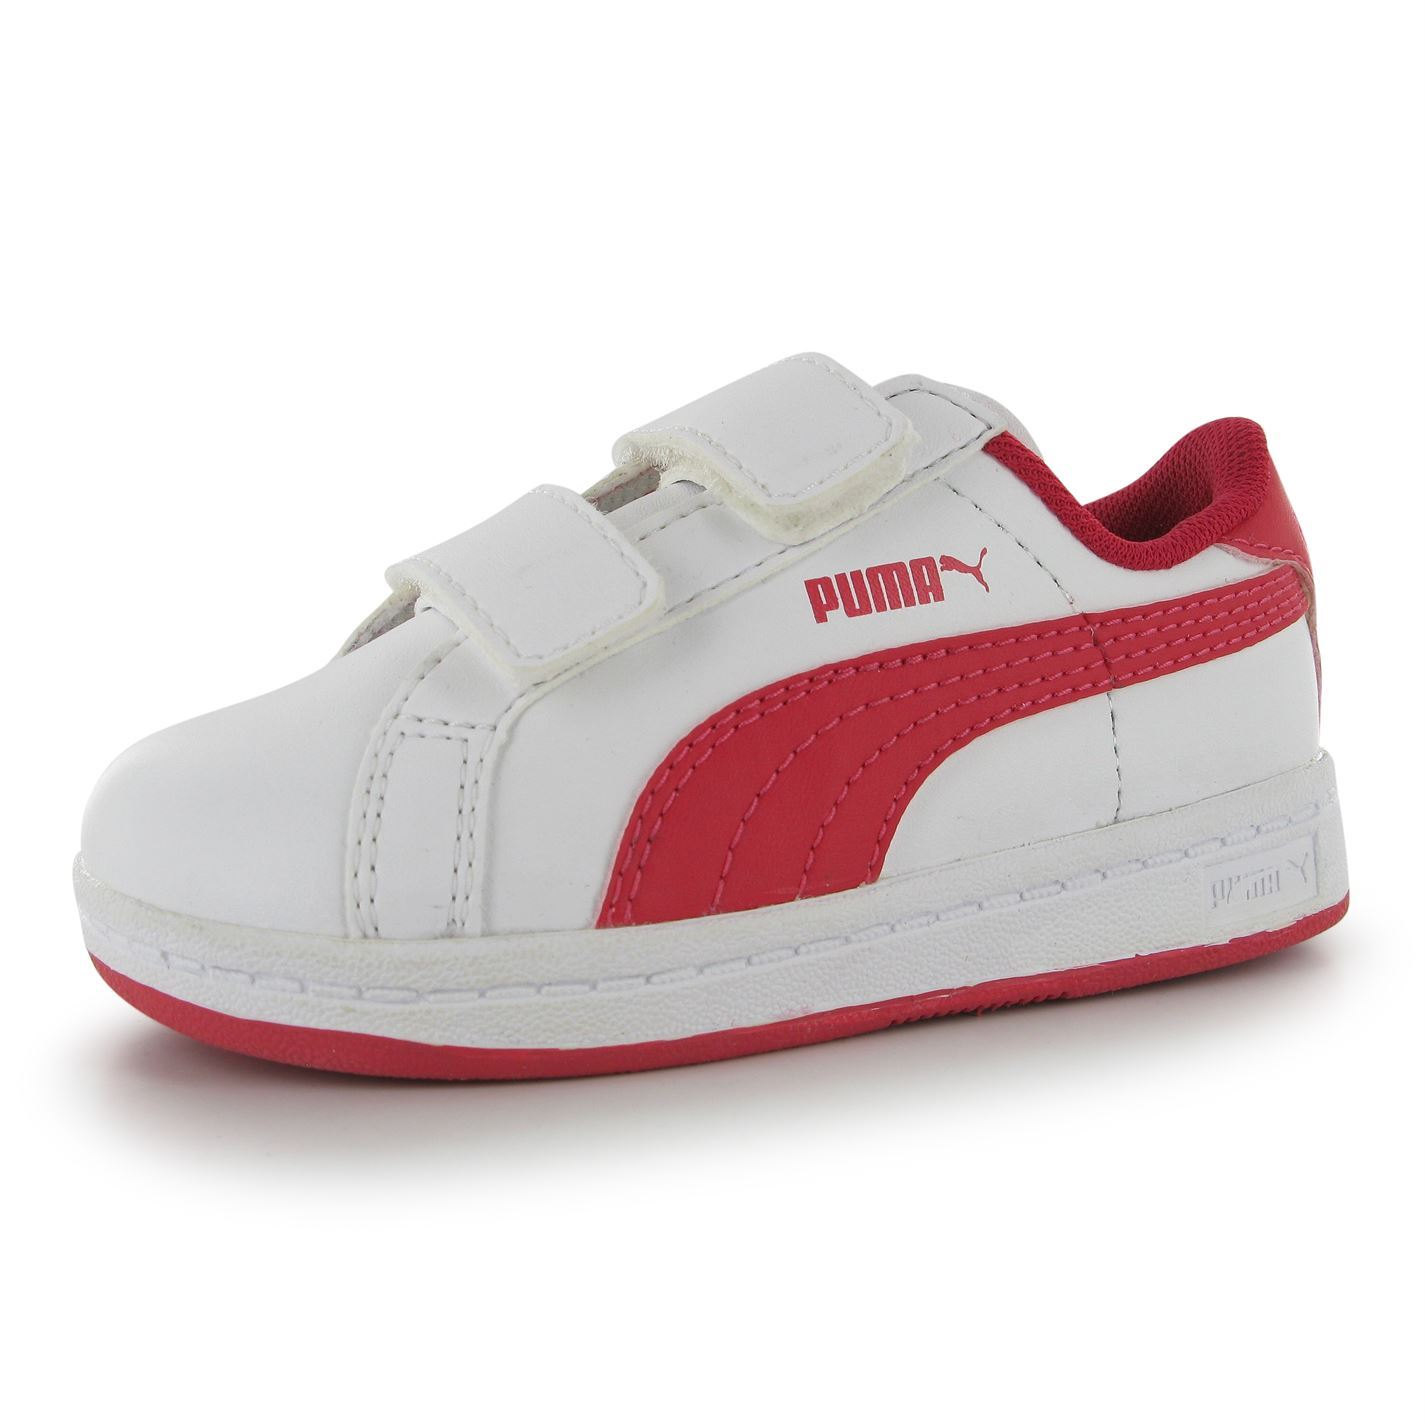 a43968e680cd Details about Puma Kids Boys Smash Trn Childrens Shoes Leather Sport Side  Logo Trainers